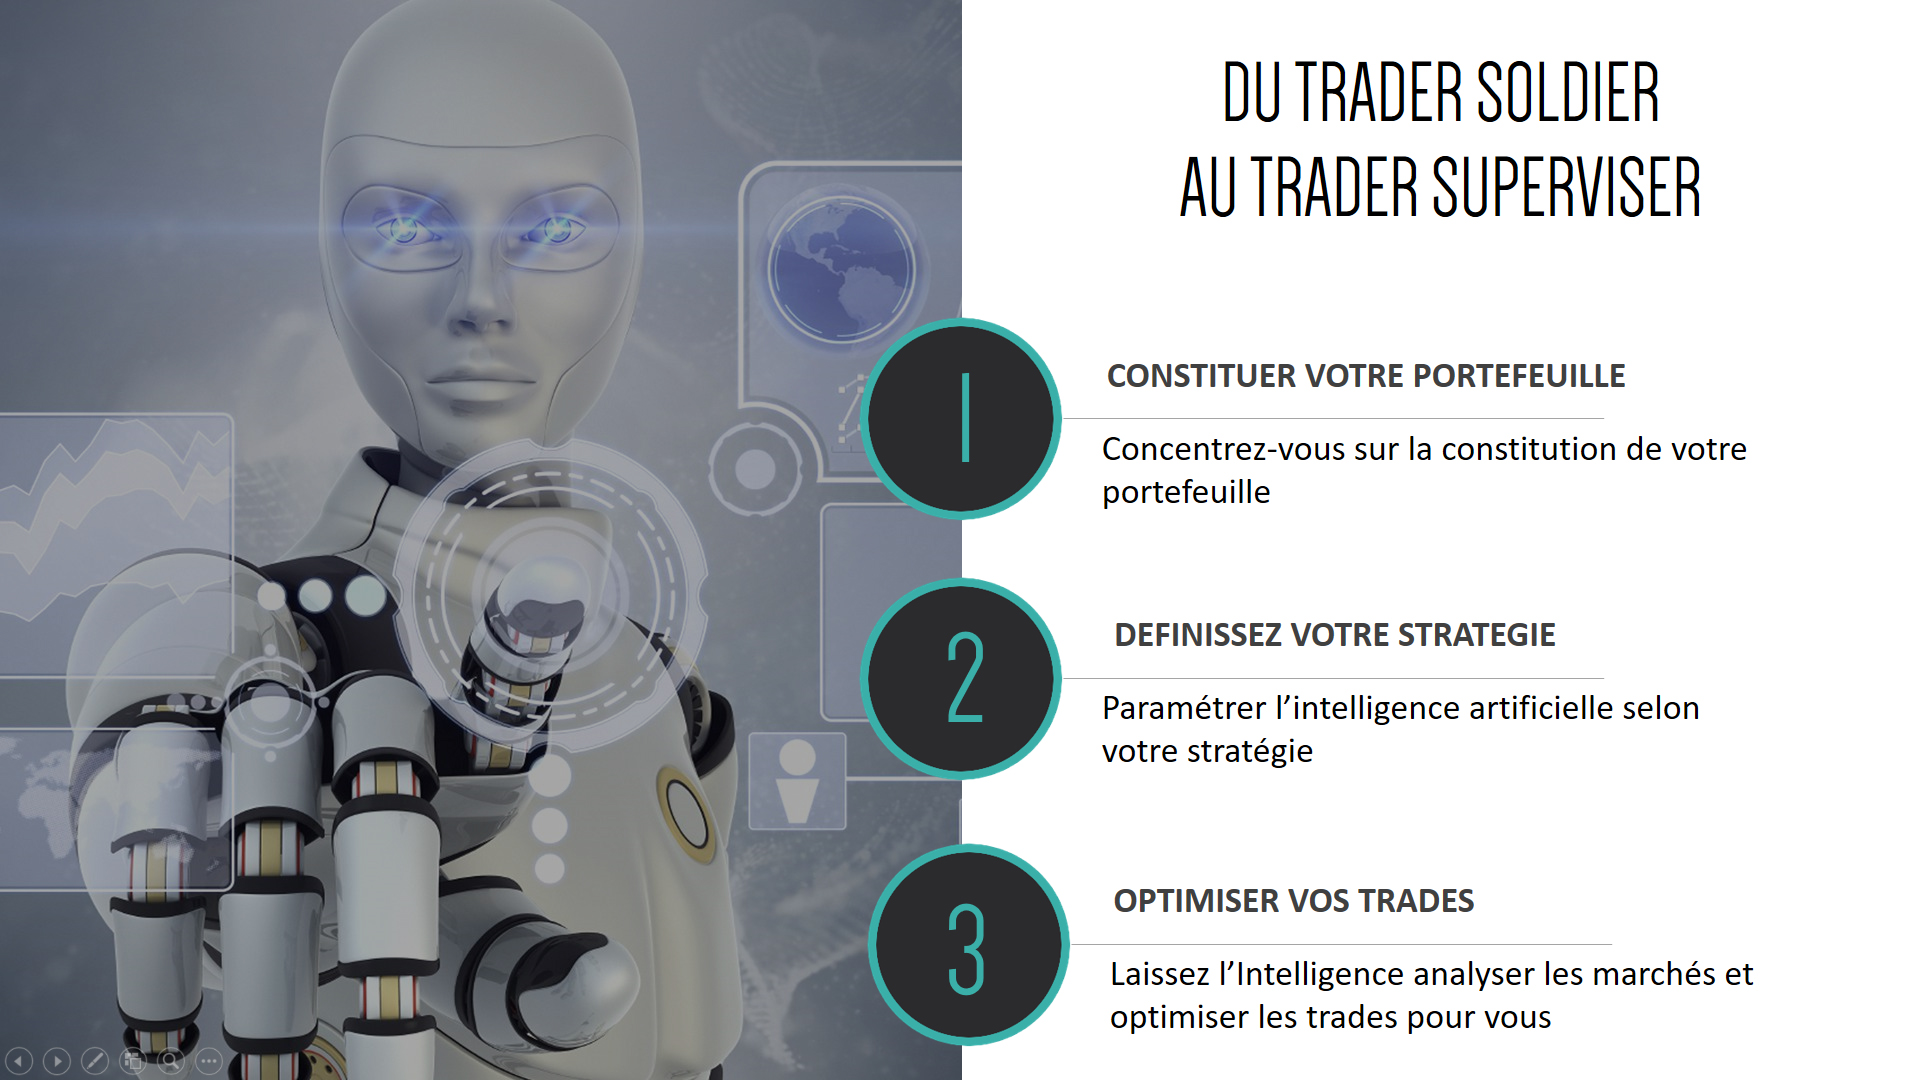 INTELLIGENCE ARTIFICIELLE SPECIALISEE DANS LE TRADING